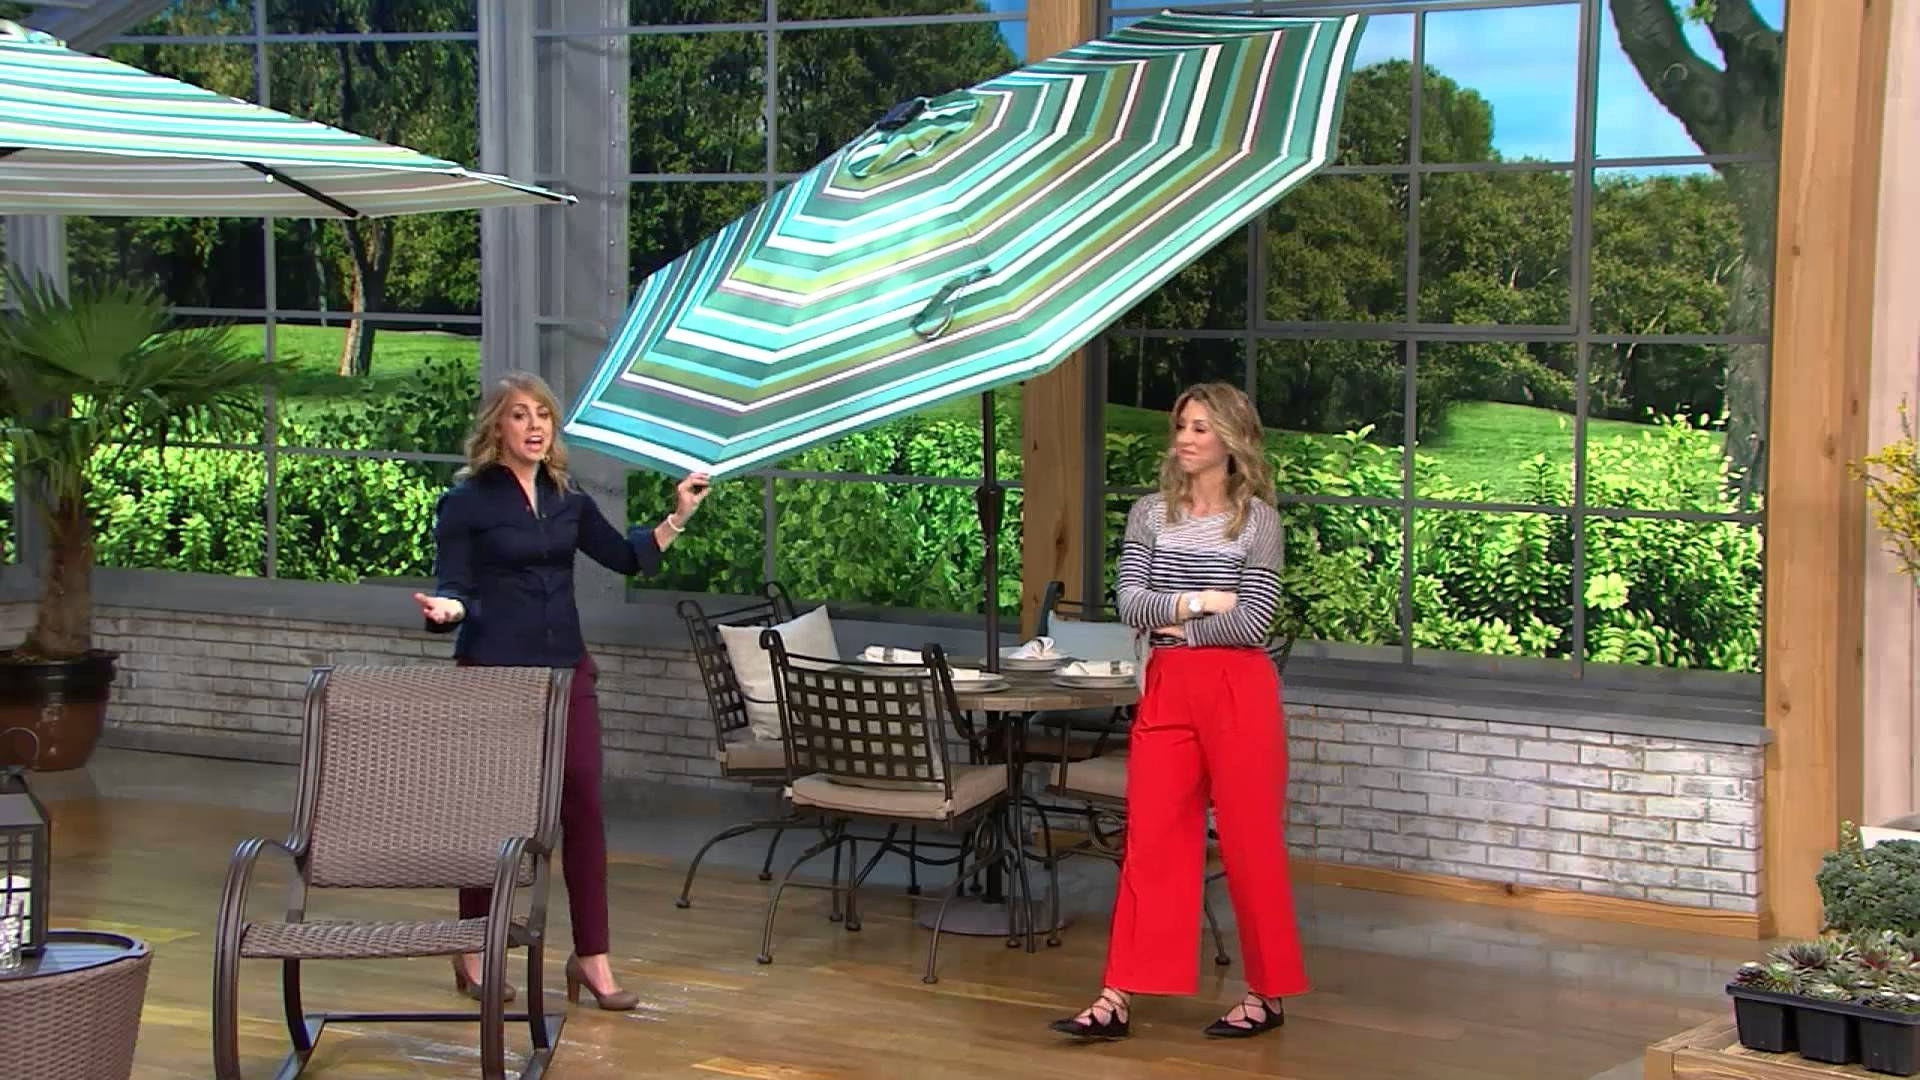 Favorite Atleisure 9' Light Solar Patio Umbrella With 44 Led's And Cover On Pertaining To Patio Umbrellas With Solar Lights (View 17 of 20)